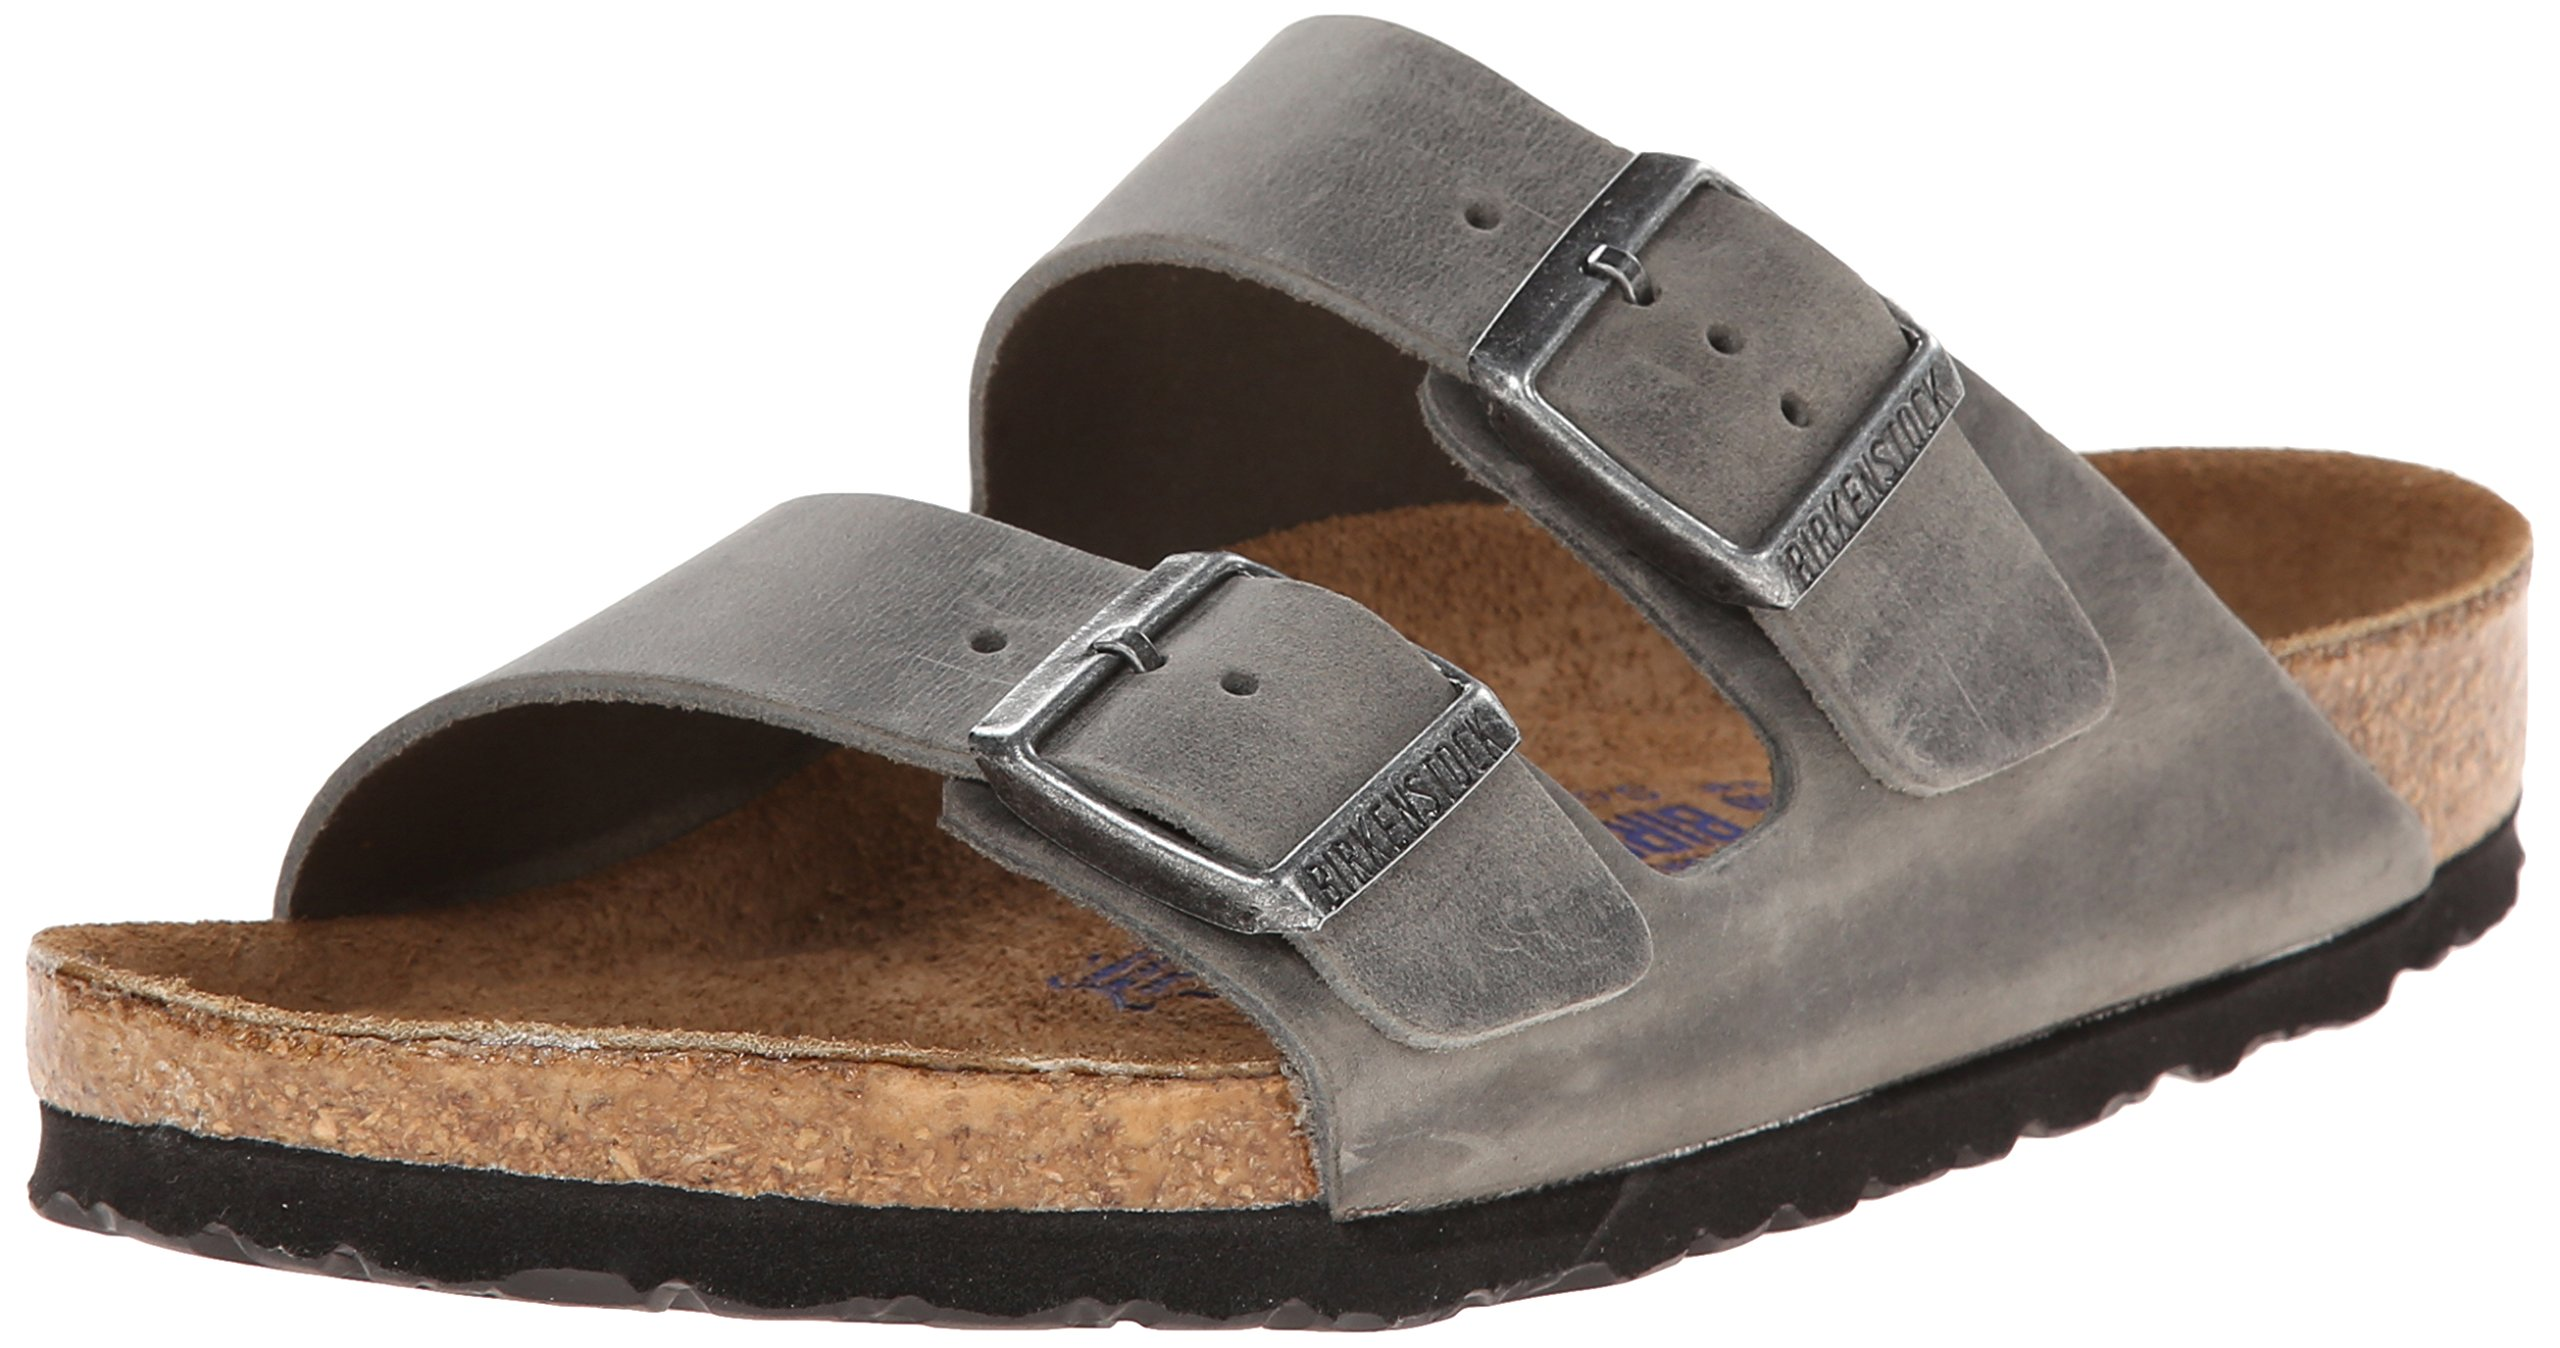 Birkenstock Unisex Arizona Iron Oiled Leather Sandals - 45 M EU/12-12.5 B(M) US Men